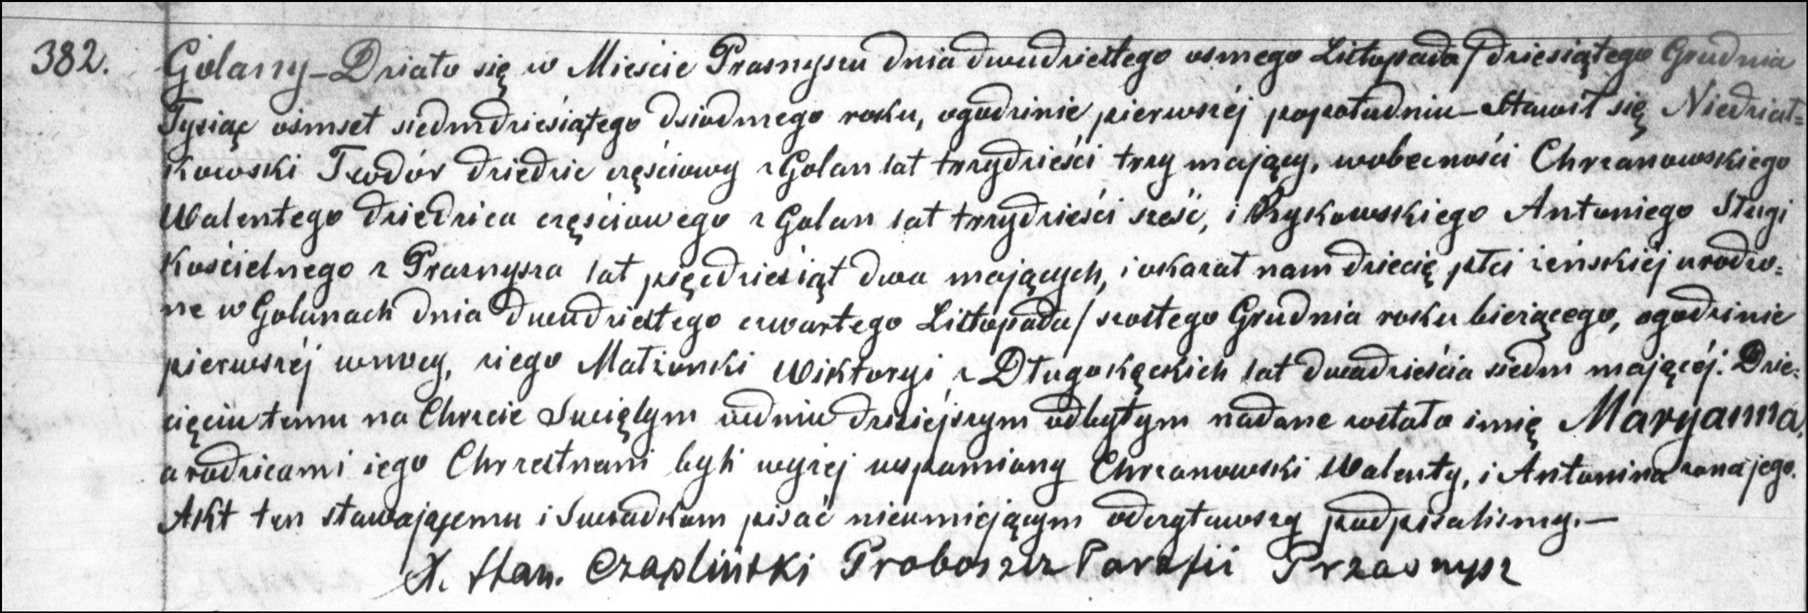 The Birth and Baptismal Record of Maryanna Niedzialkowska - 1877